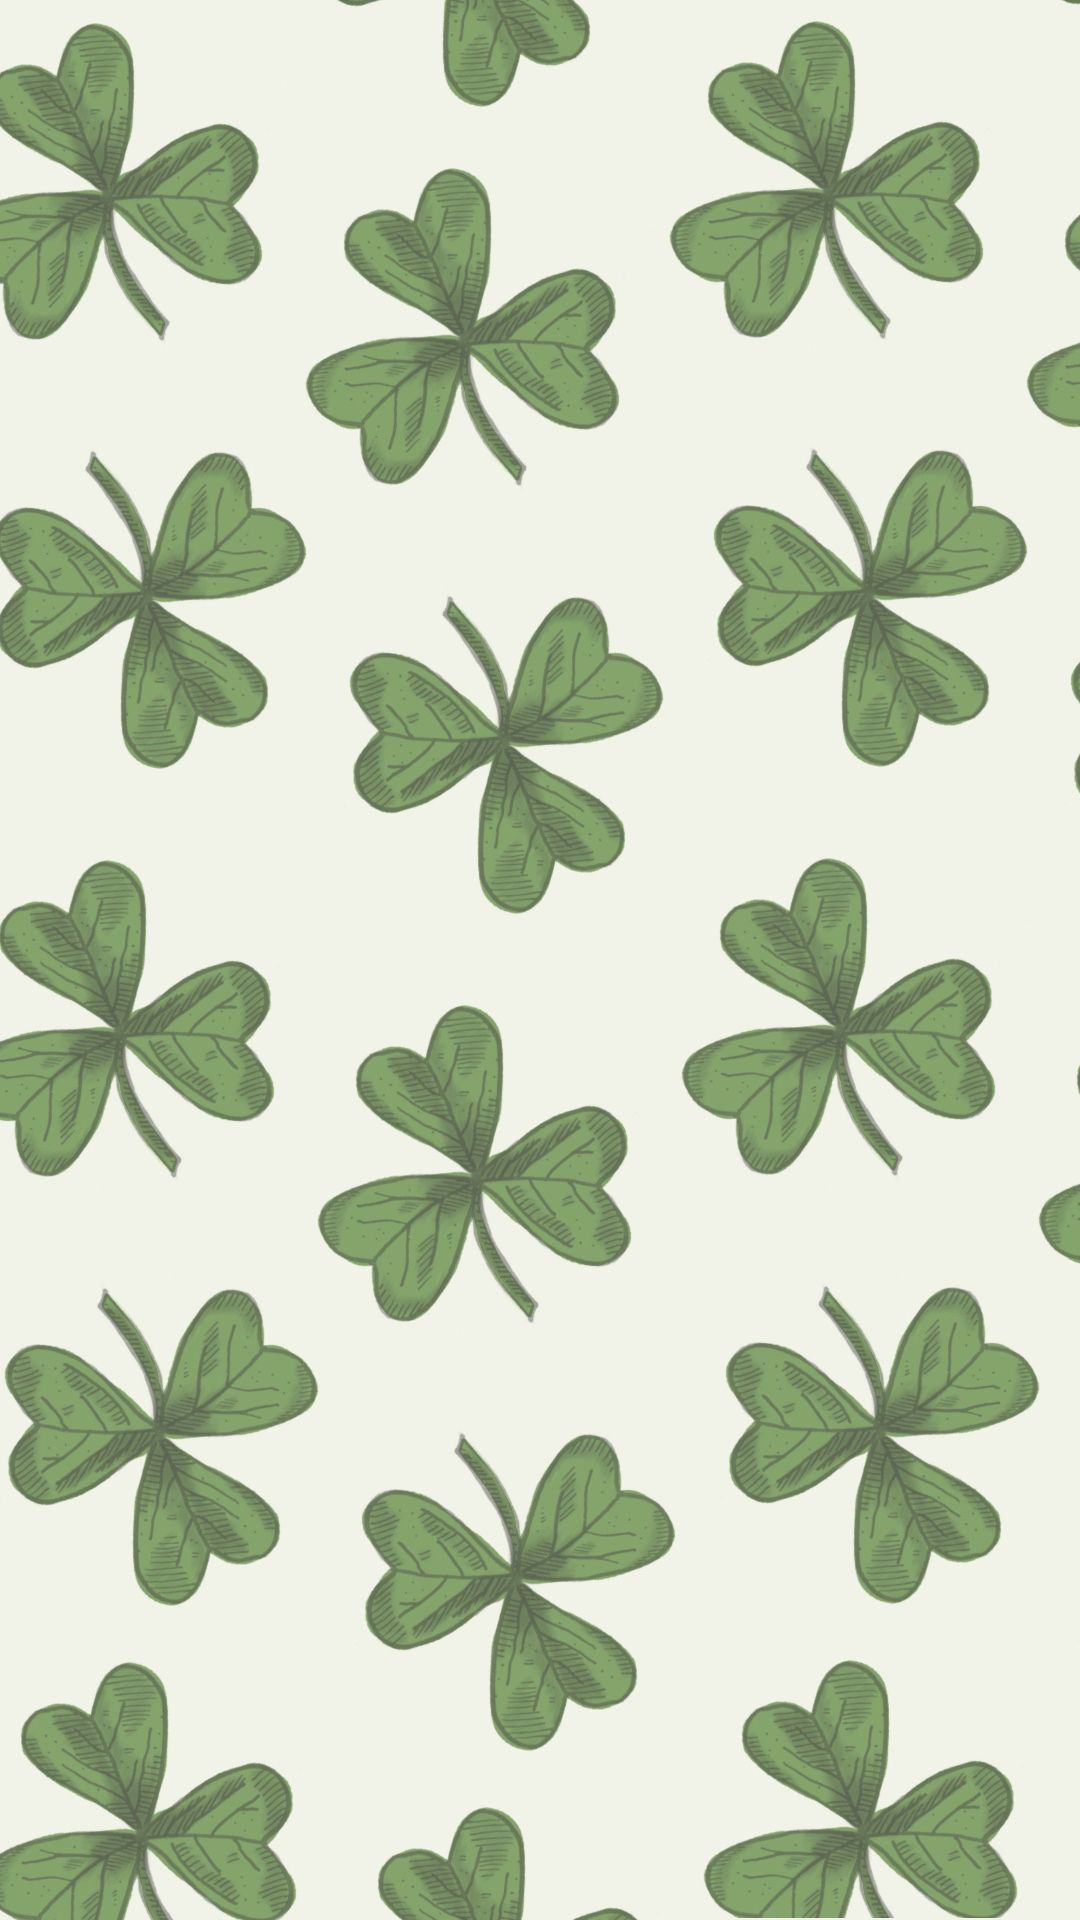 Your Free March Wallpapers Are Here Iphone Wallpaper Pattern Plain Wallpaper Iphone St Patricks Day Wallpaper